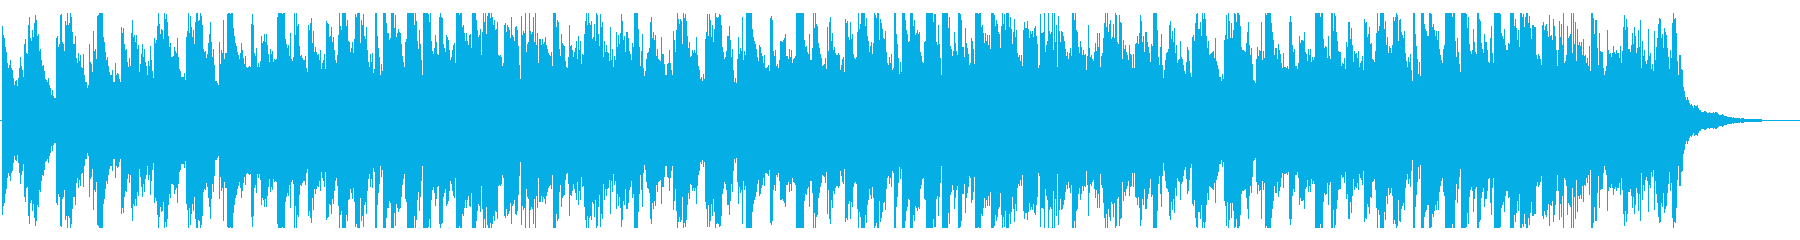 A solemn song by piano and strings's reproduced waveform